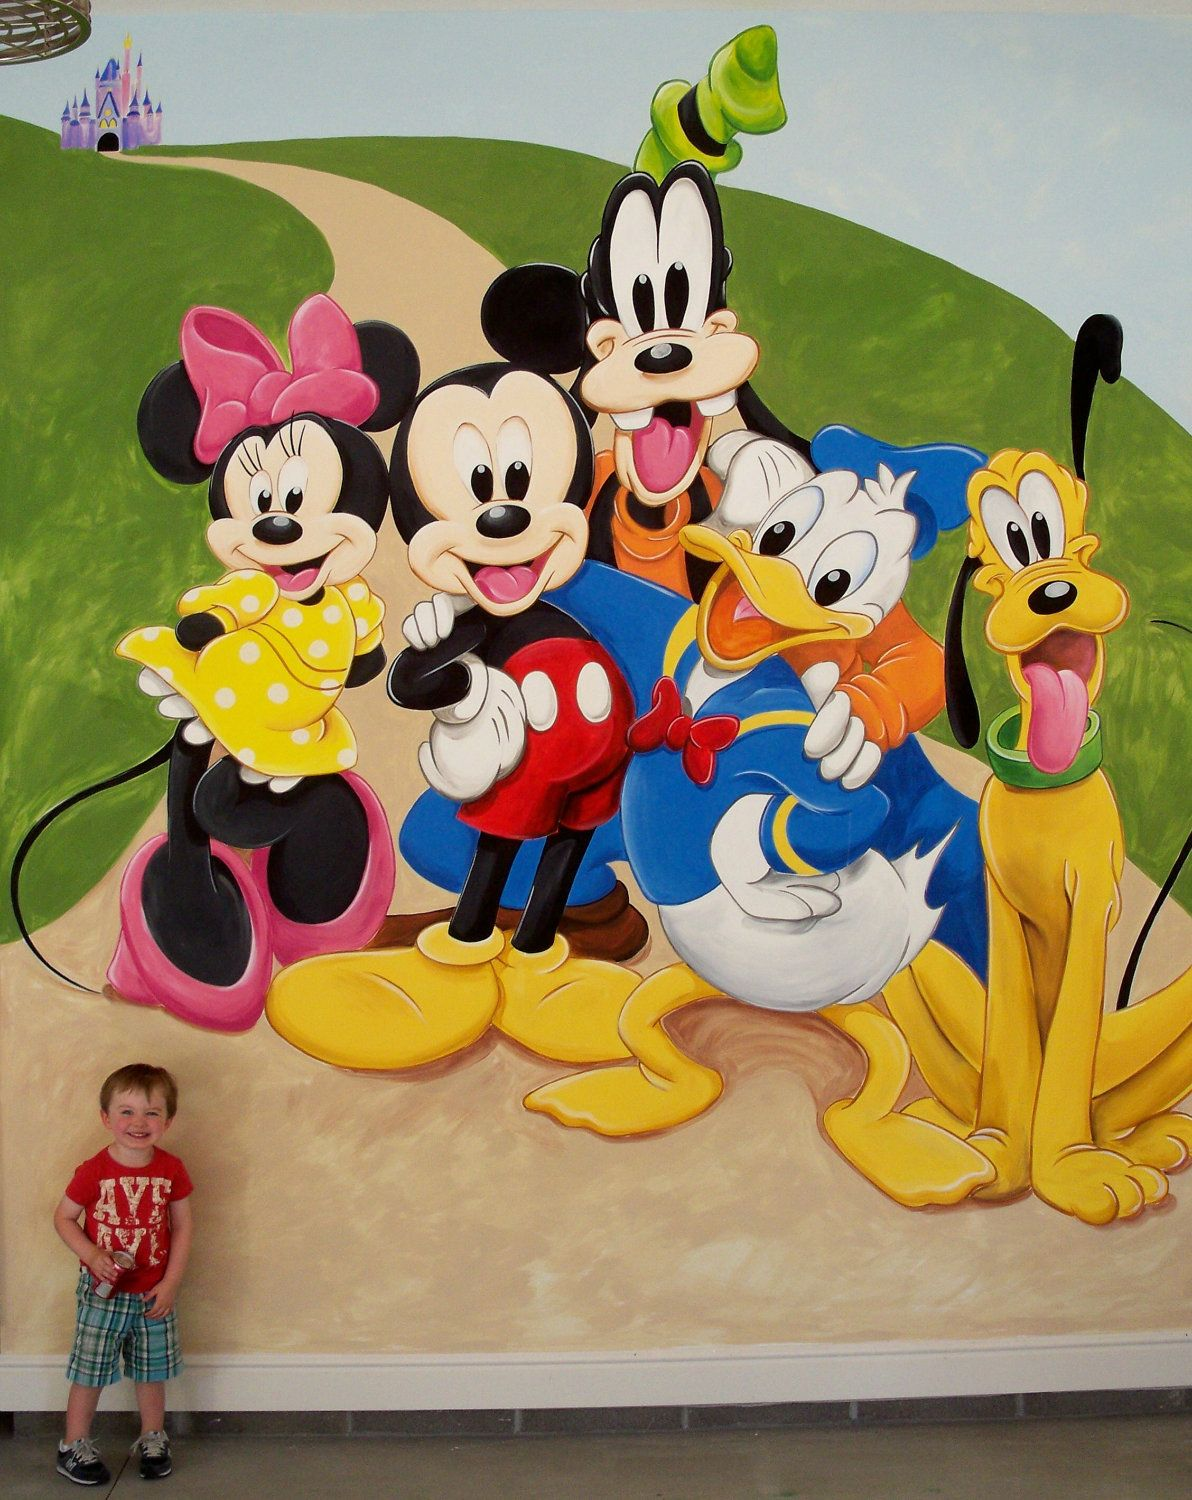 Mickey+Mouse+and+Friends+Mural+by+LynneMackMurals+on+